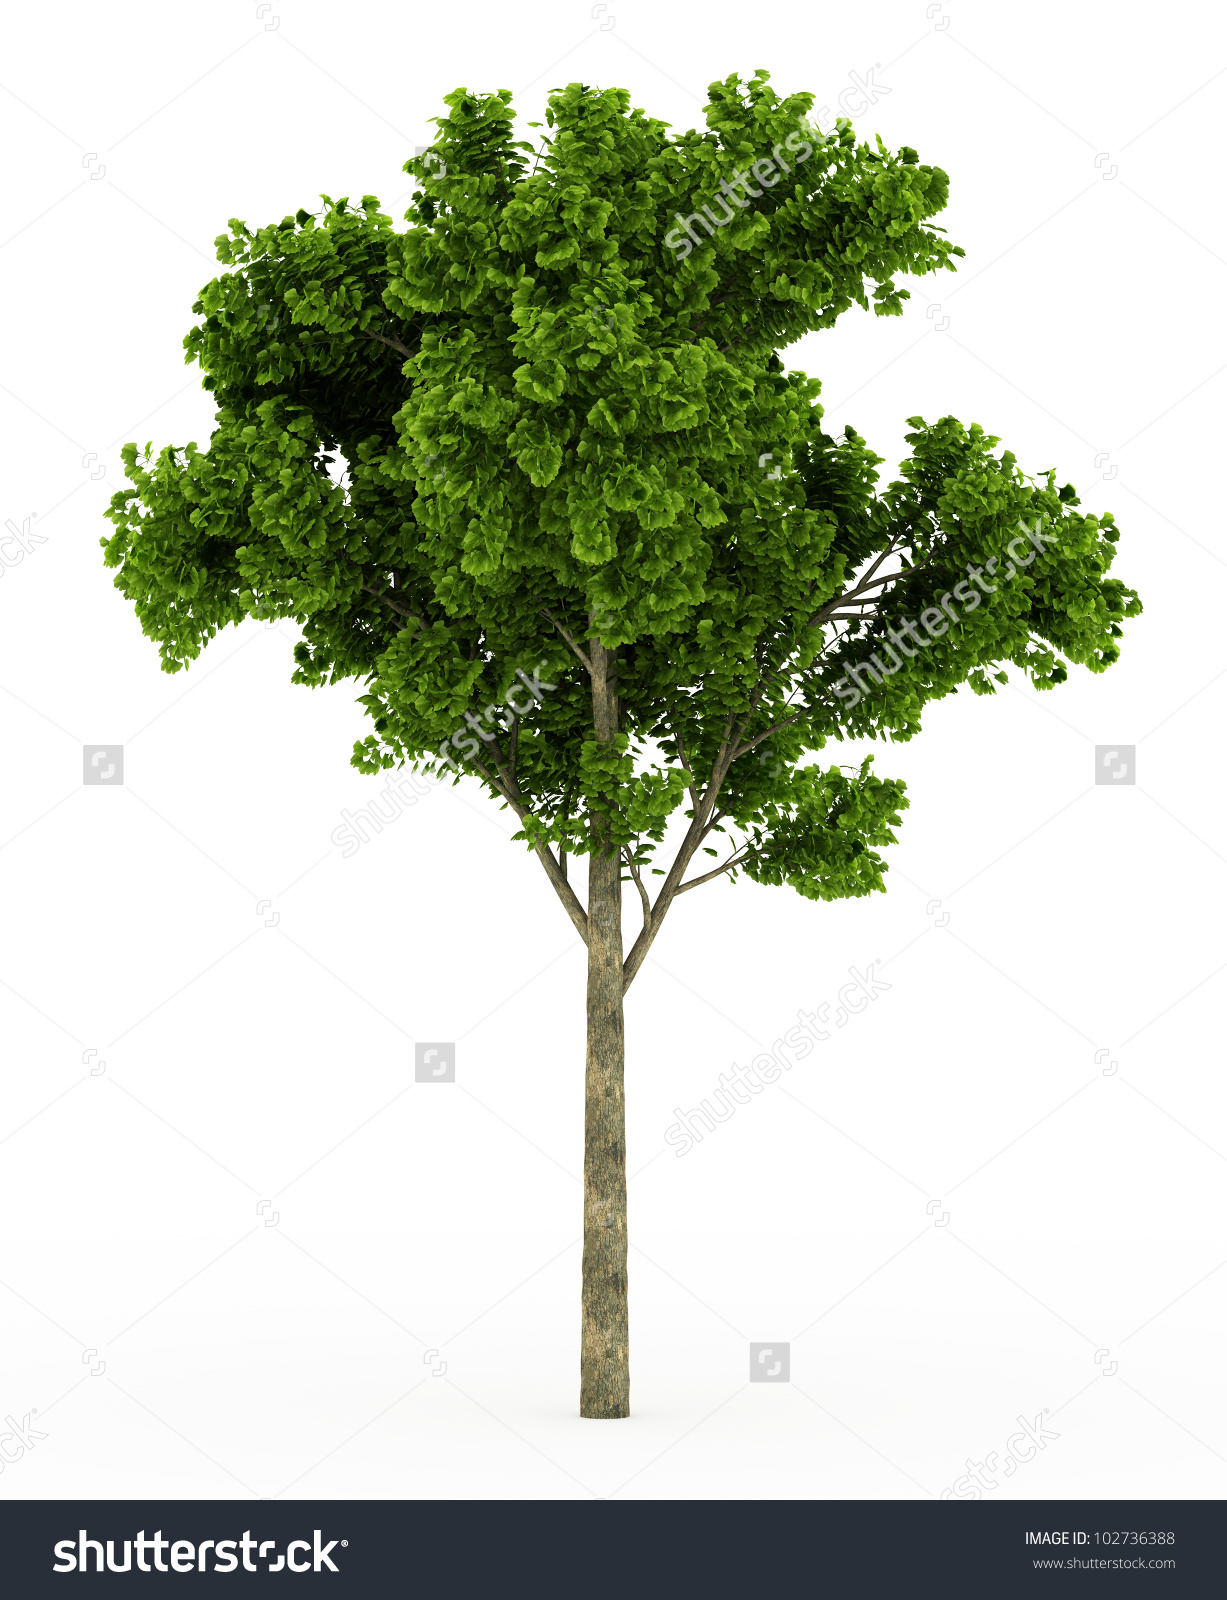 Ginkgo tree clipart.